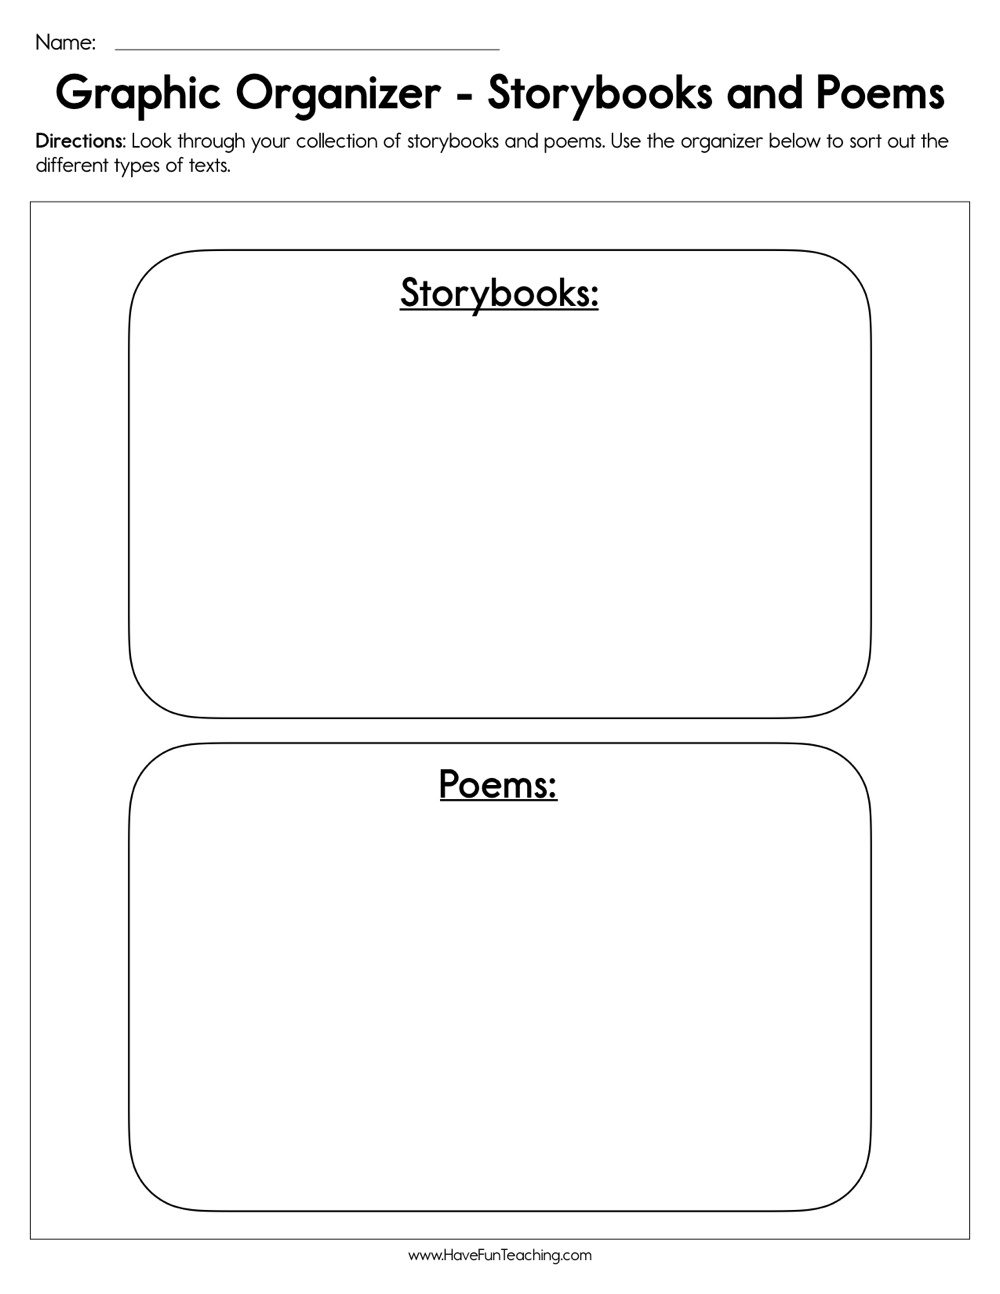 Resources | Have Fun Teaching - Free Printable Sequence Of Events Graphic Organizer